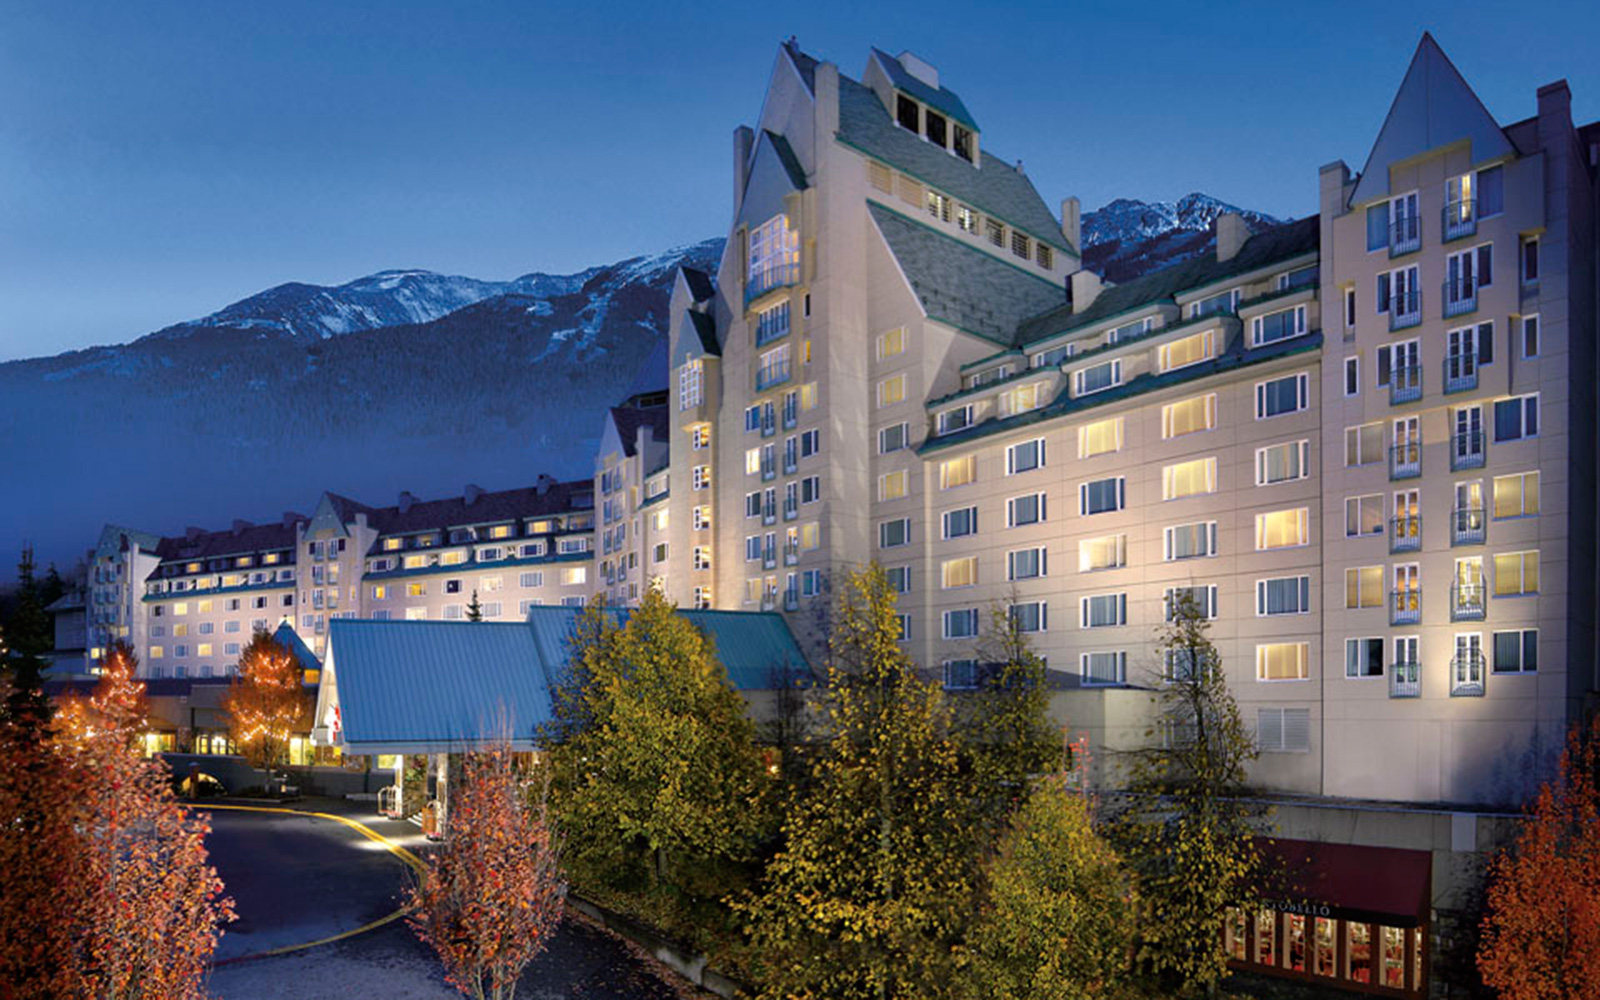 No. 17 Fairmont Chateau Whistler, Canada